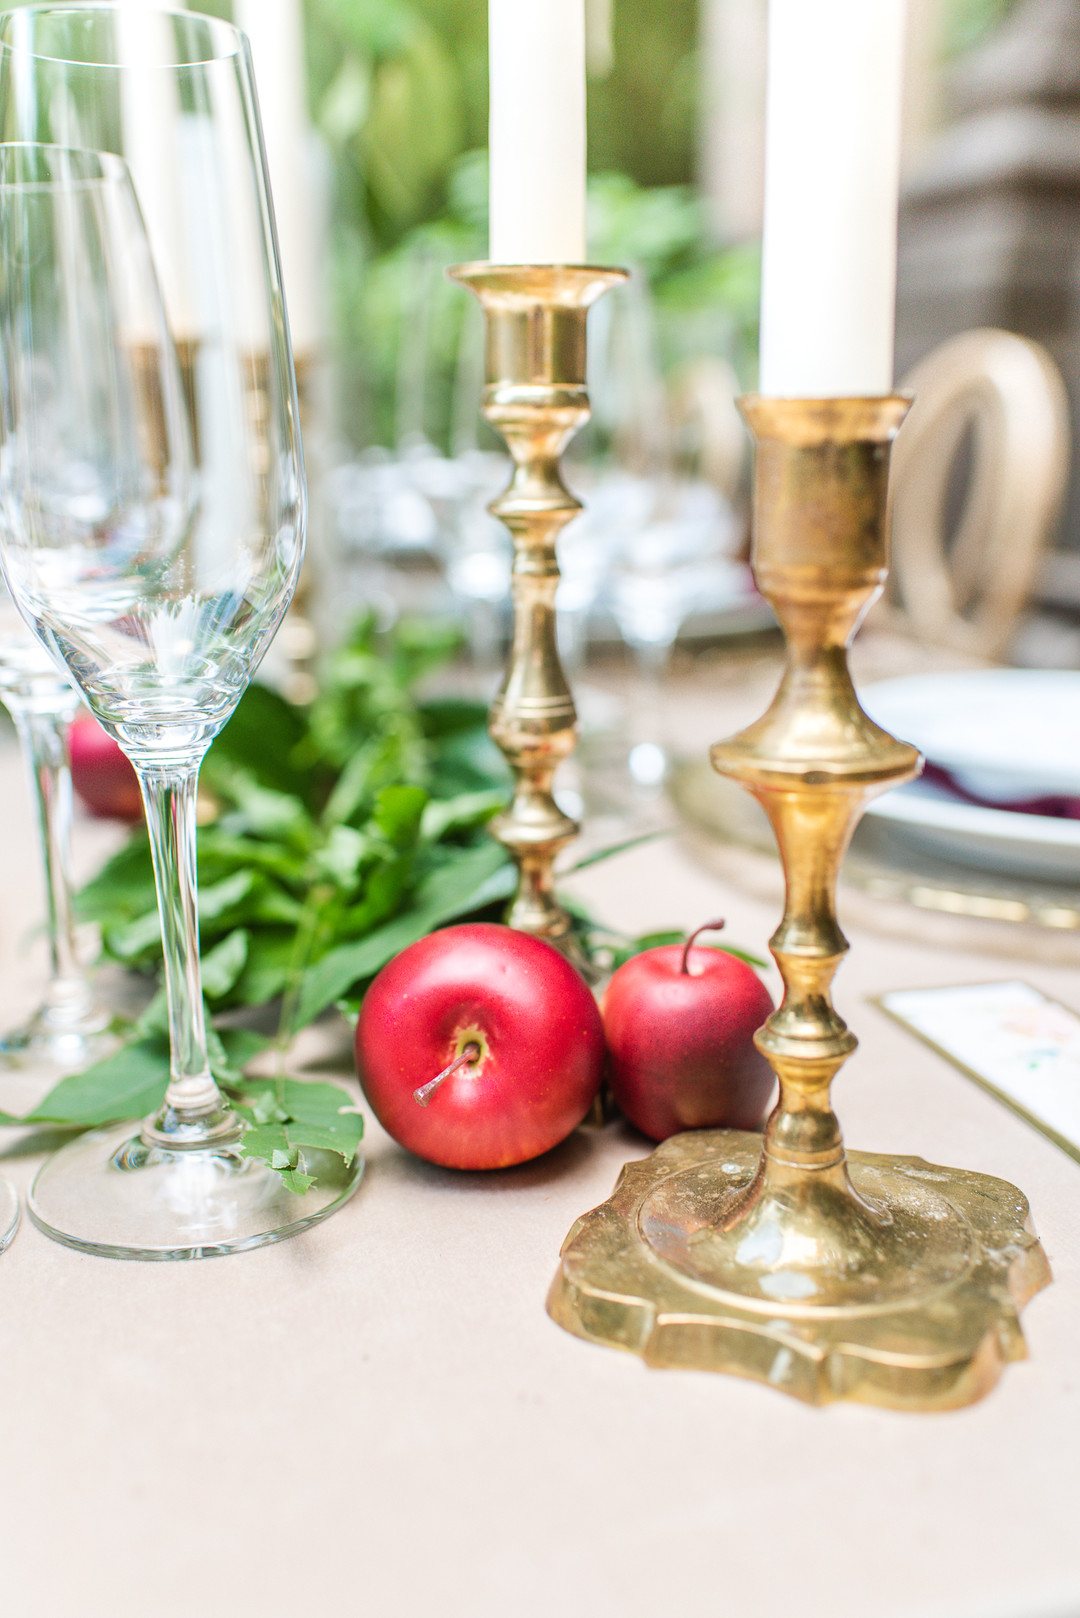 wedding table decor, red apples and gold candlesticks